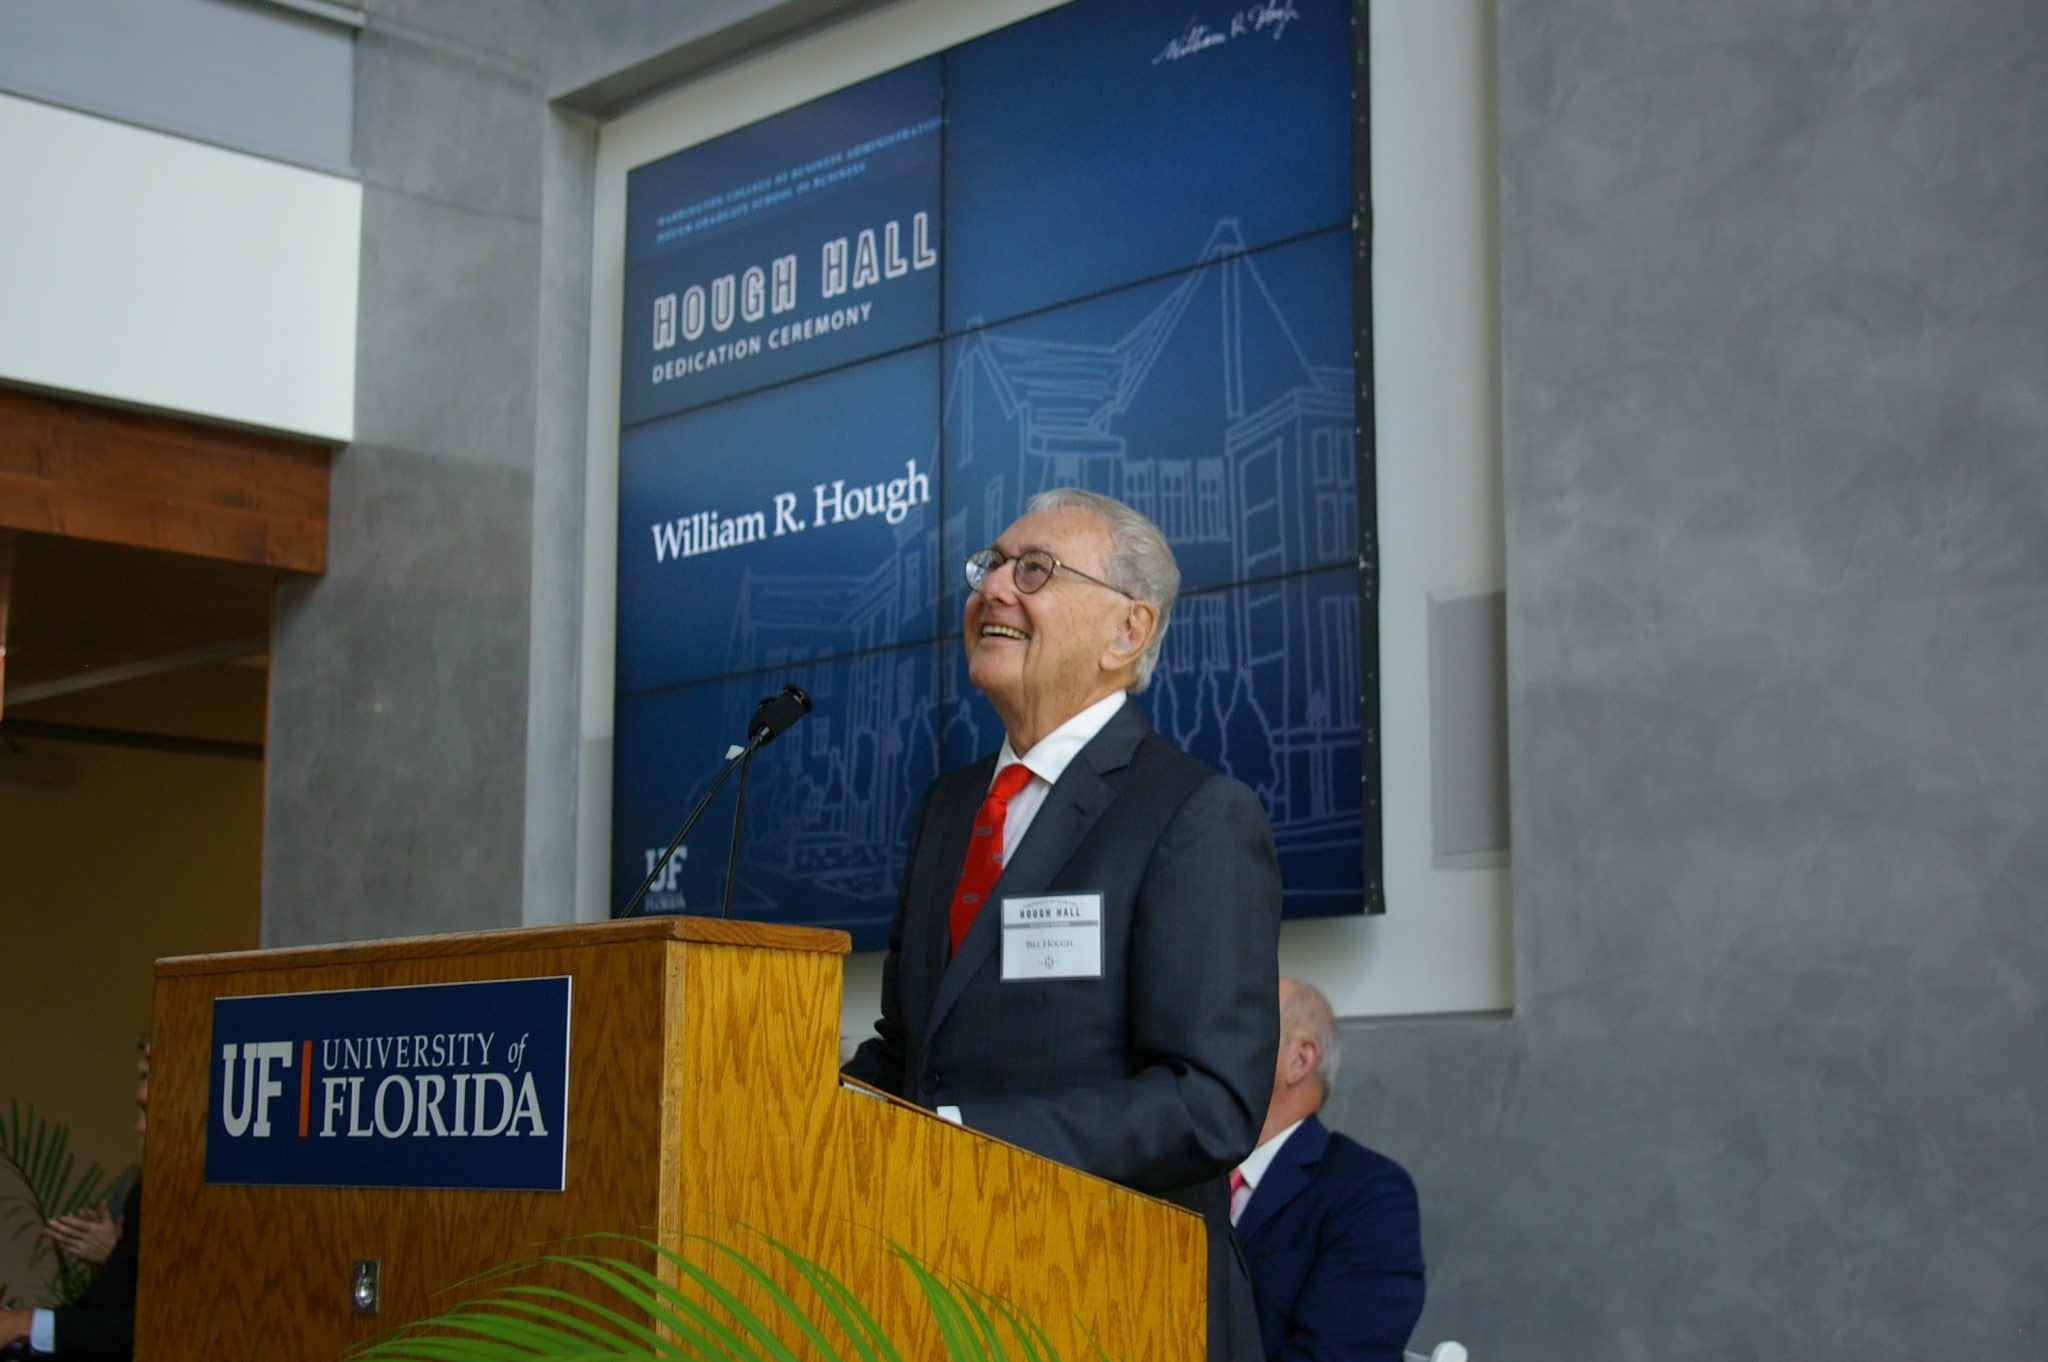 Bill Hough smiles while looking up at the crowd during the Hough Hall dedication ceremony.